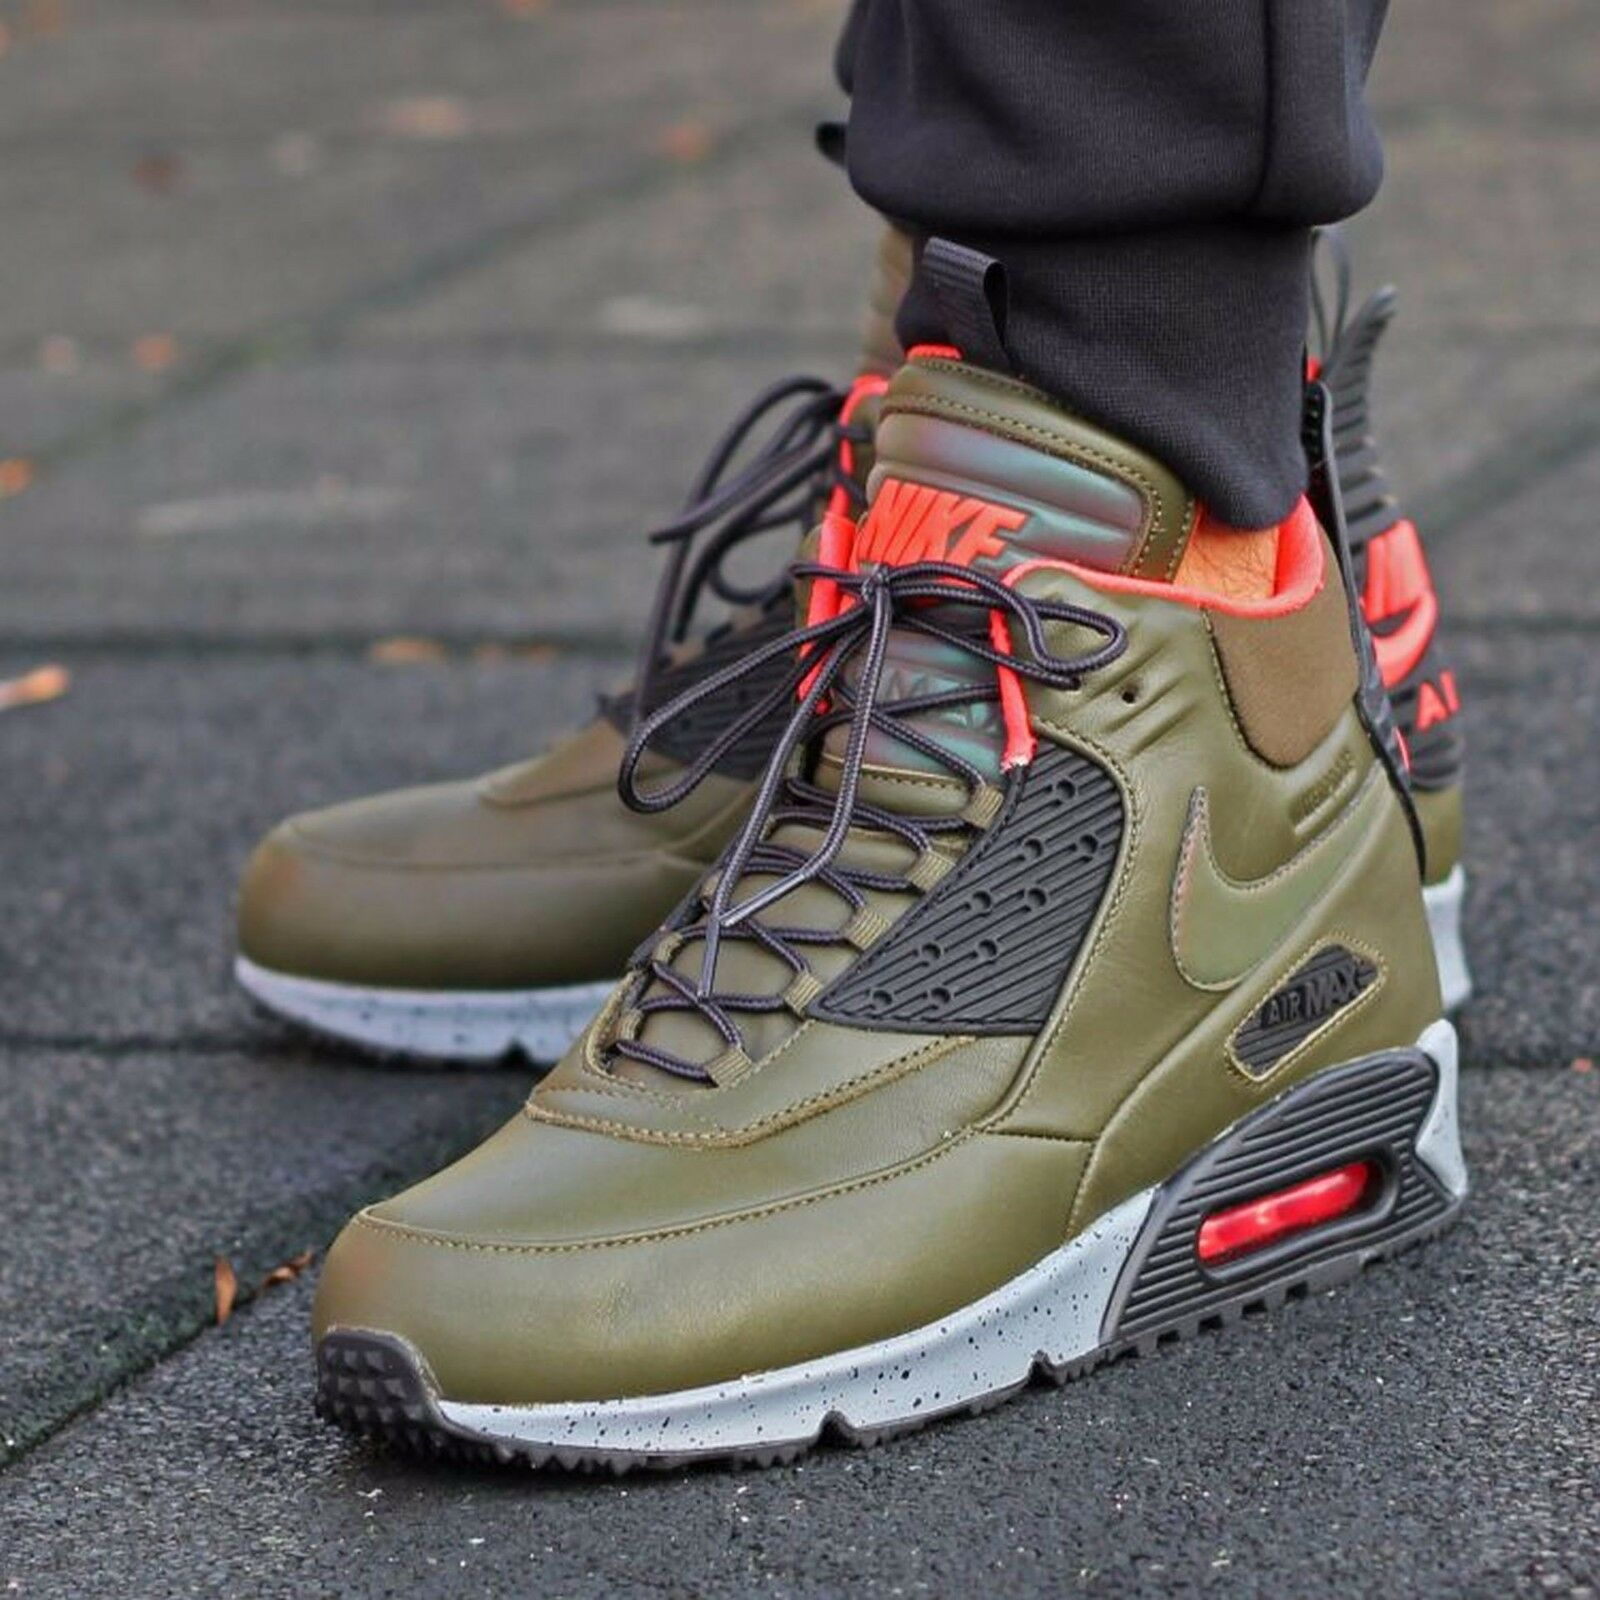 nike air max 90 winter boots